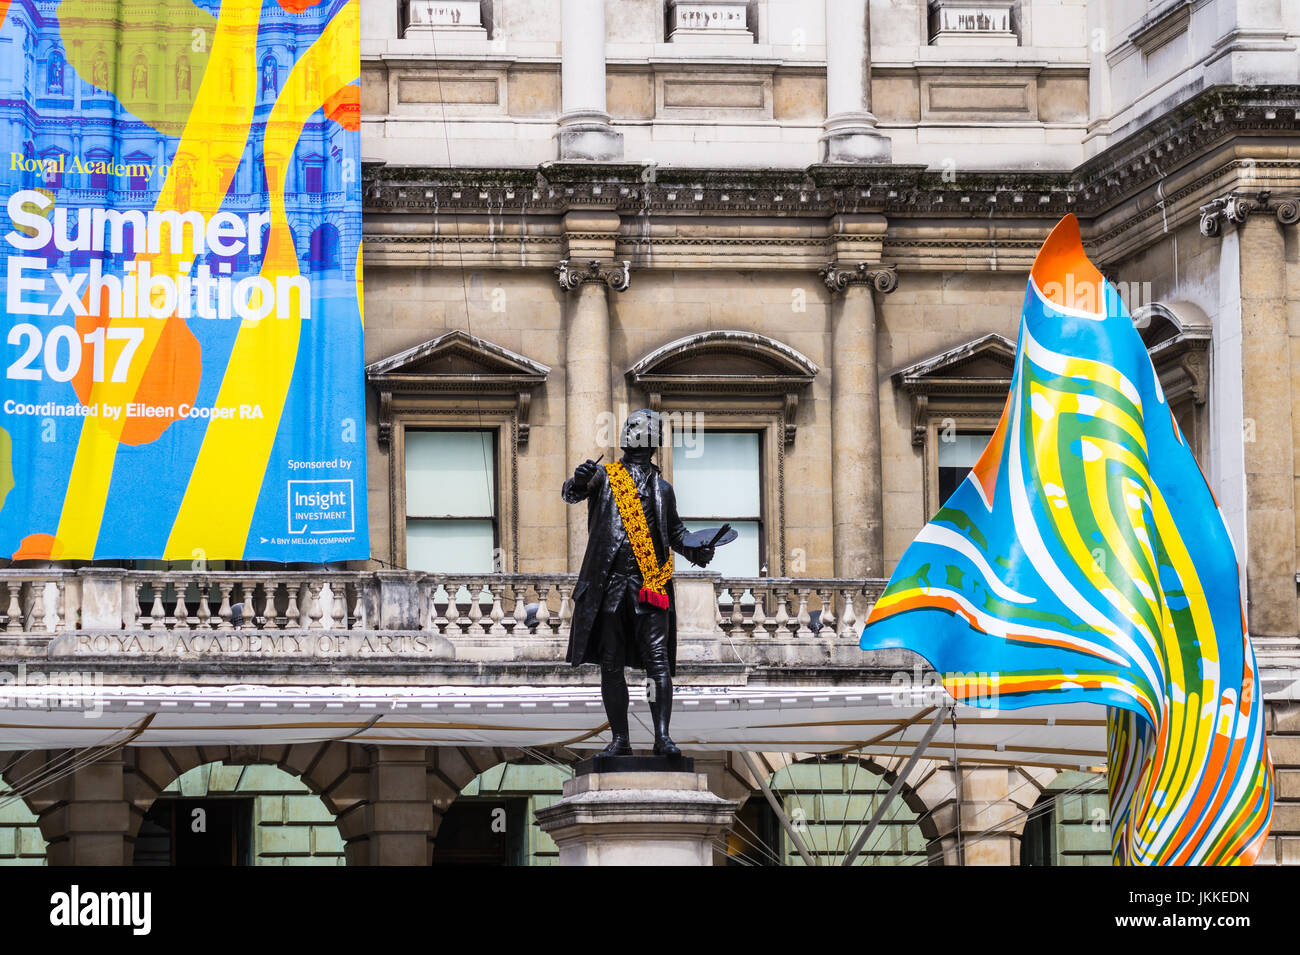 statue-of-joshua-reynolds-summer-exhibition-2017-banner-wind-sculpture-JKKEDN.jpg